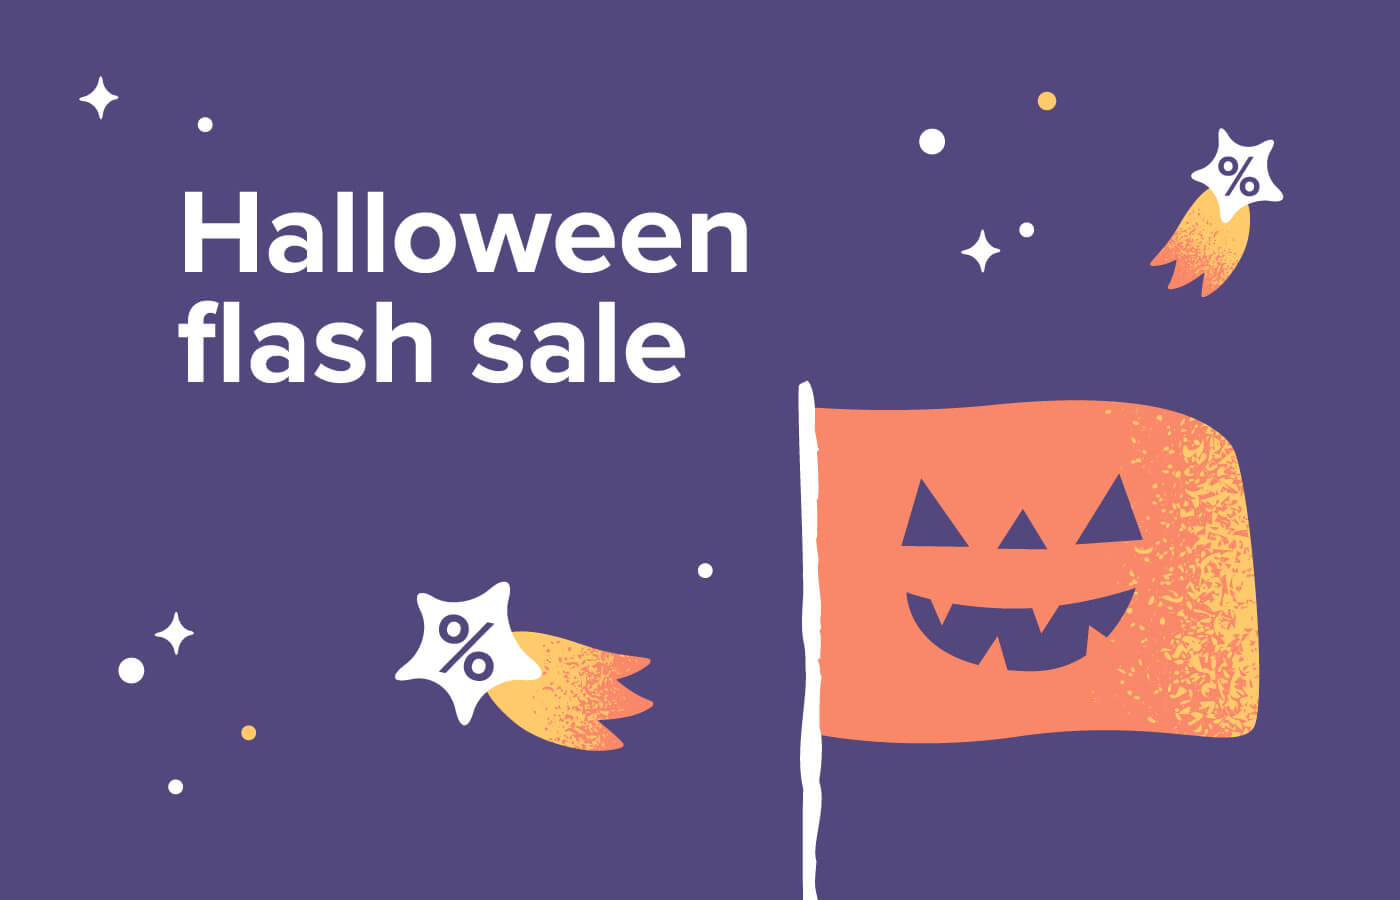 How to boost profits for your Shopify store with a Halloween flash sale